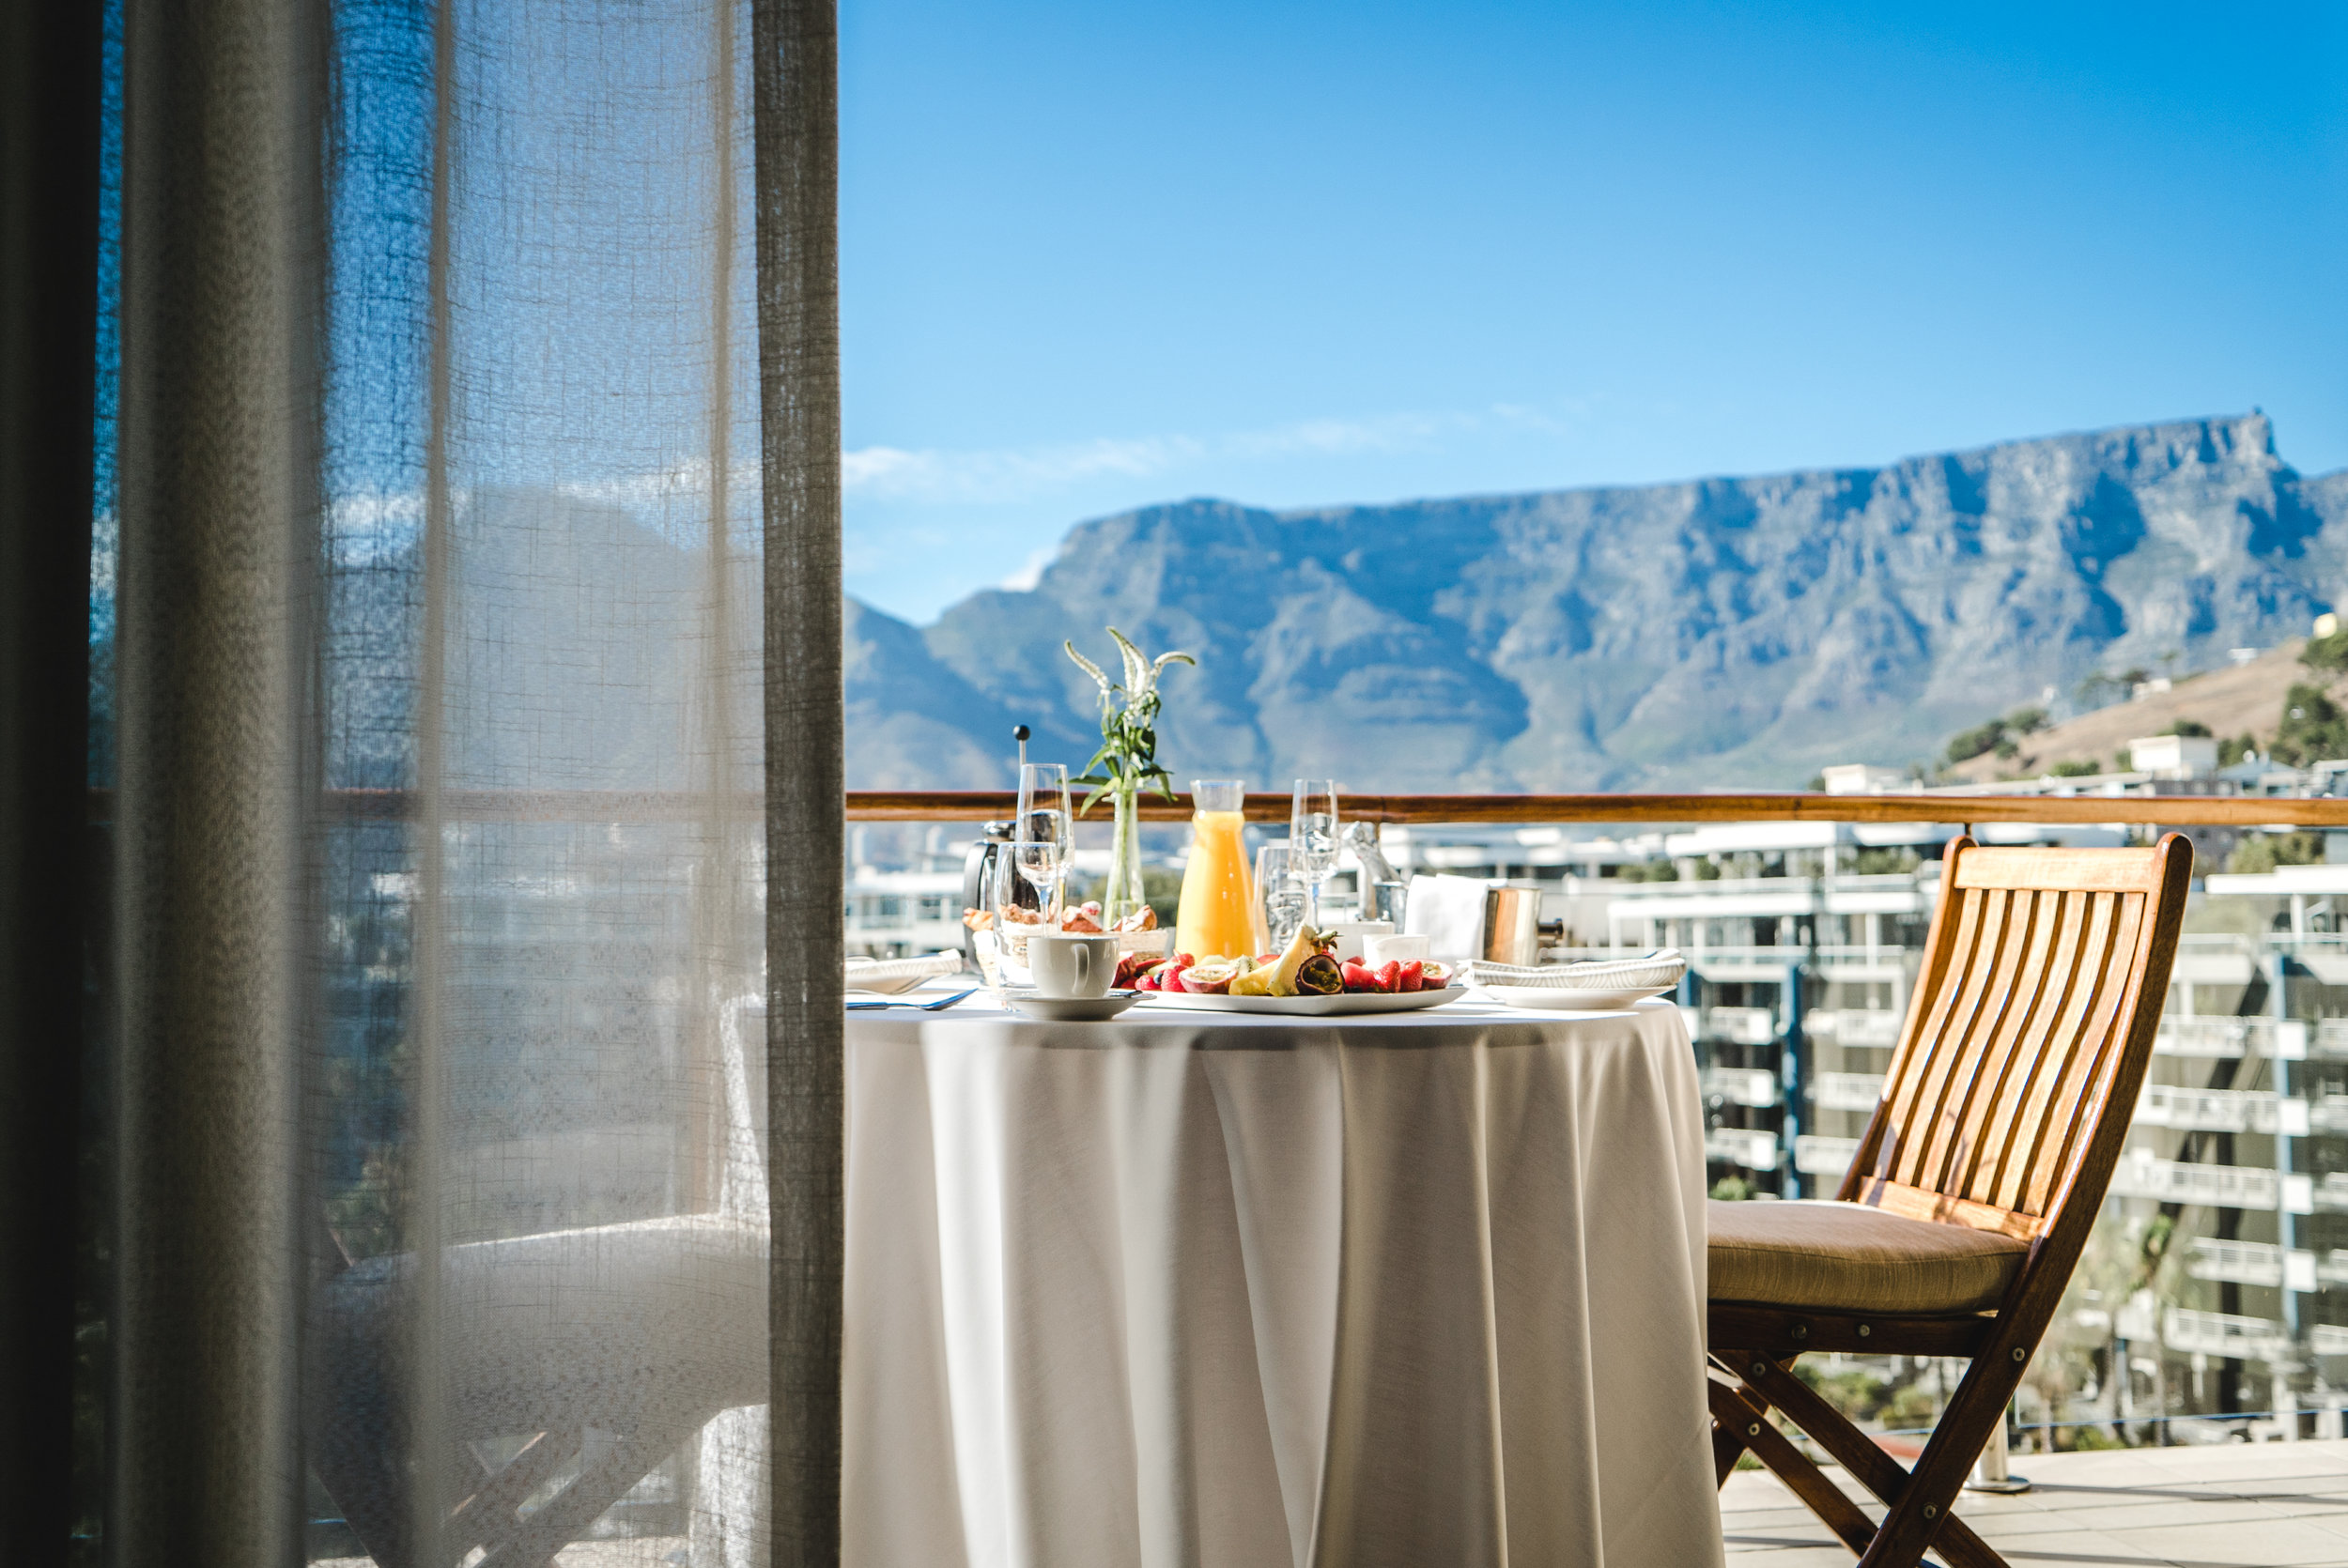 A continental breakfast set on the balcony at the One&Only Cape Town with a beautiful view of Table Mountain